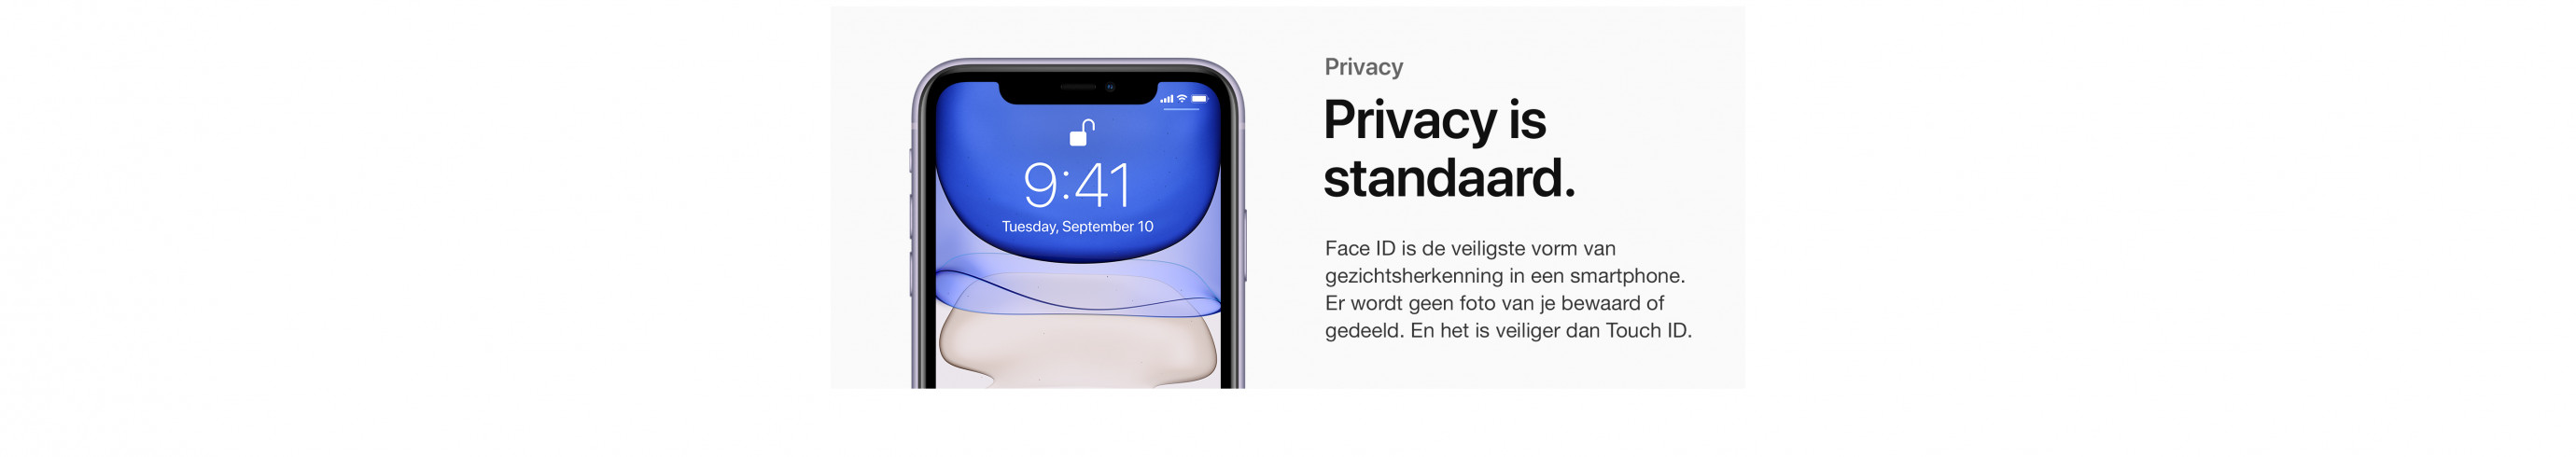 iPhone11-2-productpage_08.jpg